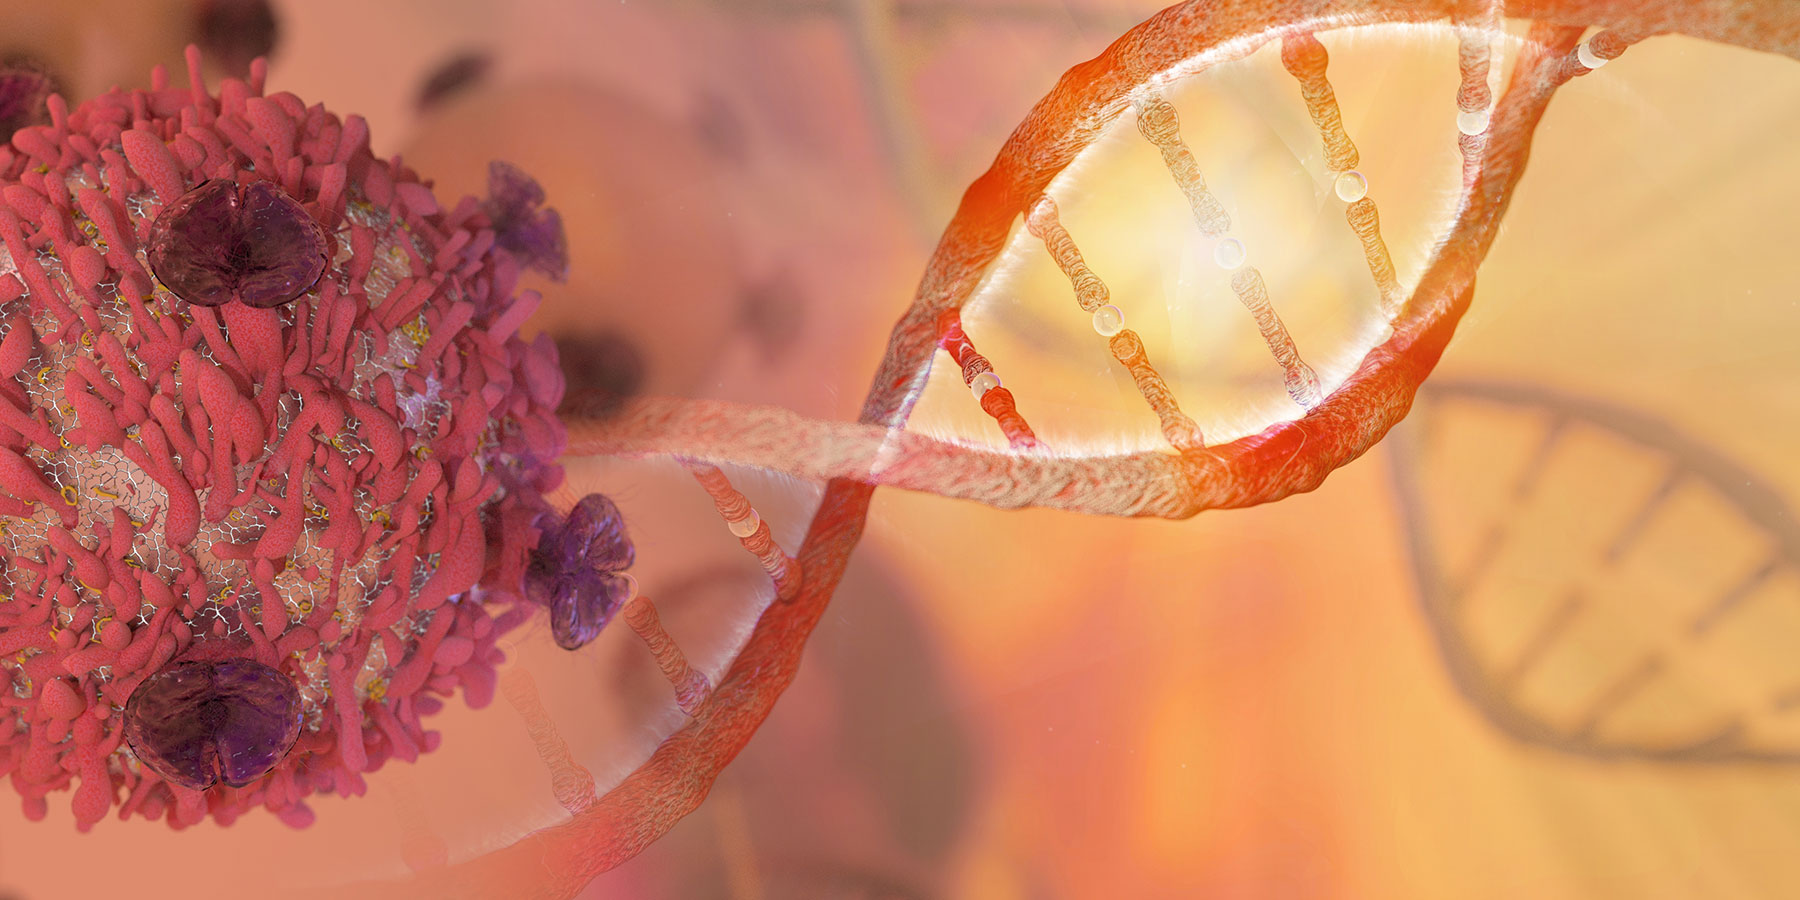 Researchers Discover How Enzyme Protects Cells from DNA Damage